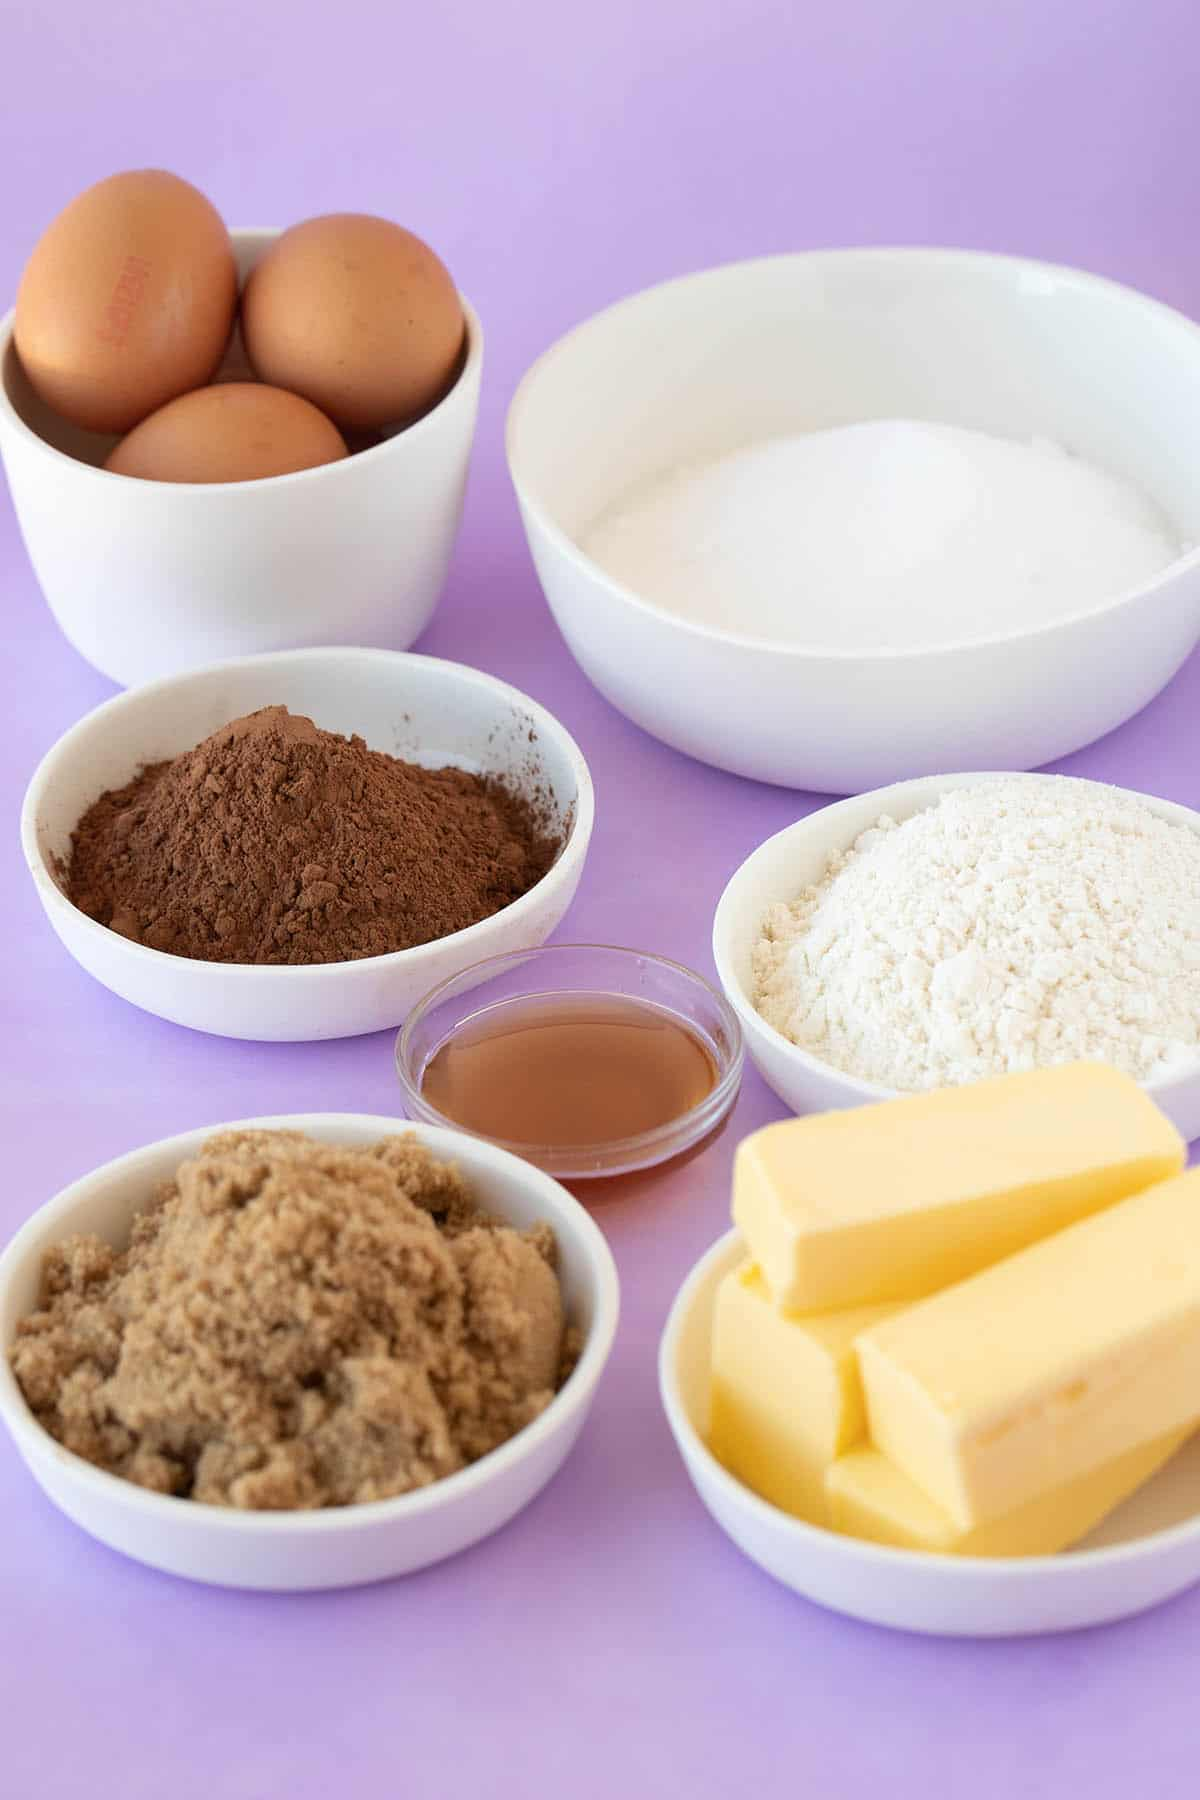 The ingredients for Cocoa Brownies laid out on a purple background